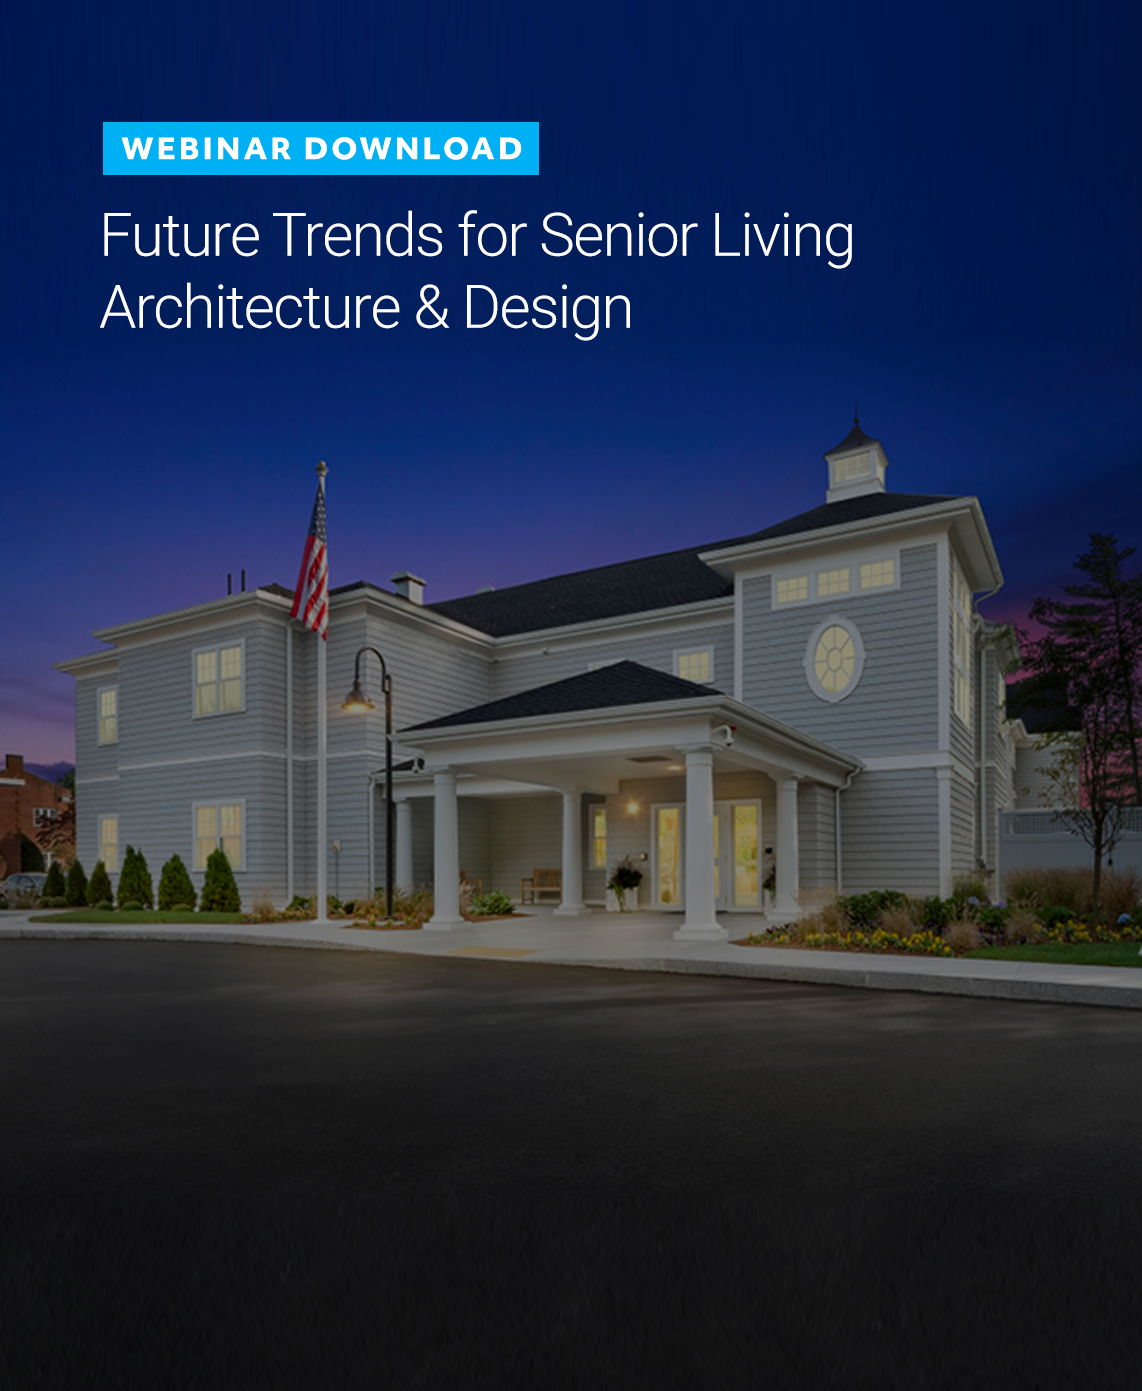 [Webinar] Future Trends for Senior Living Architecture & Design